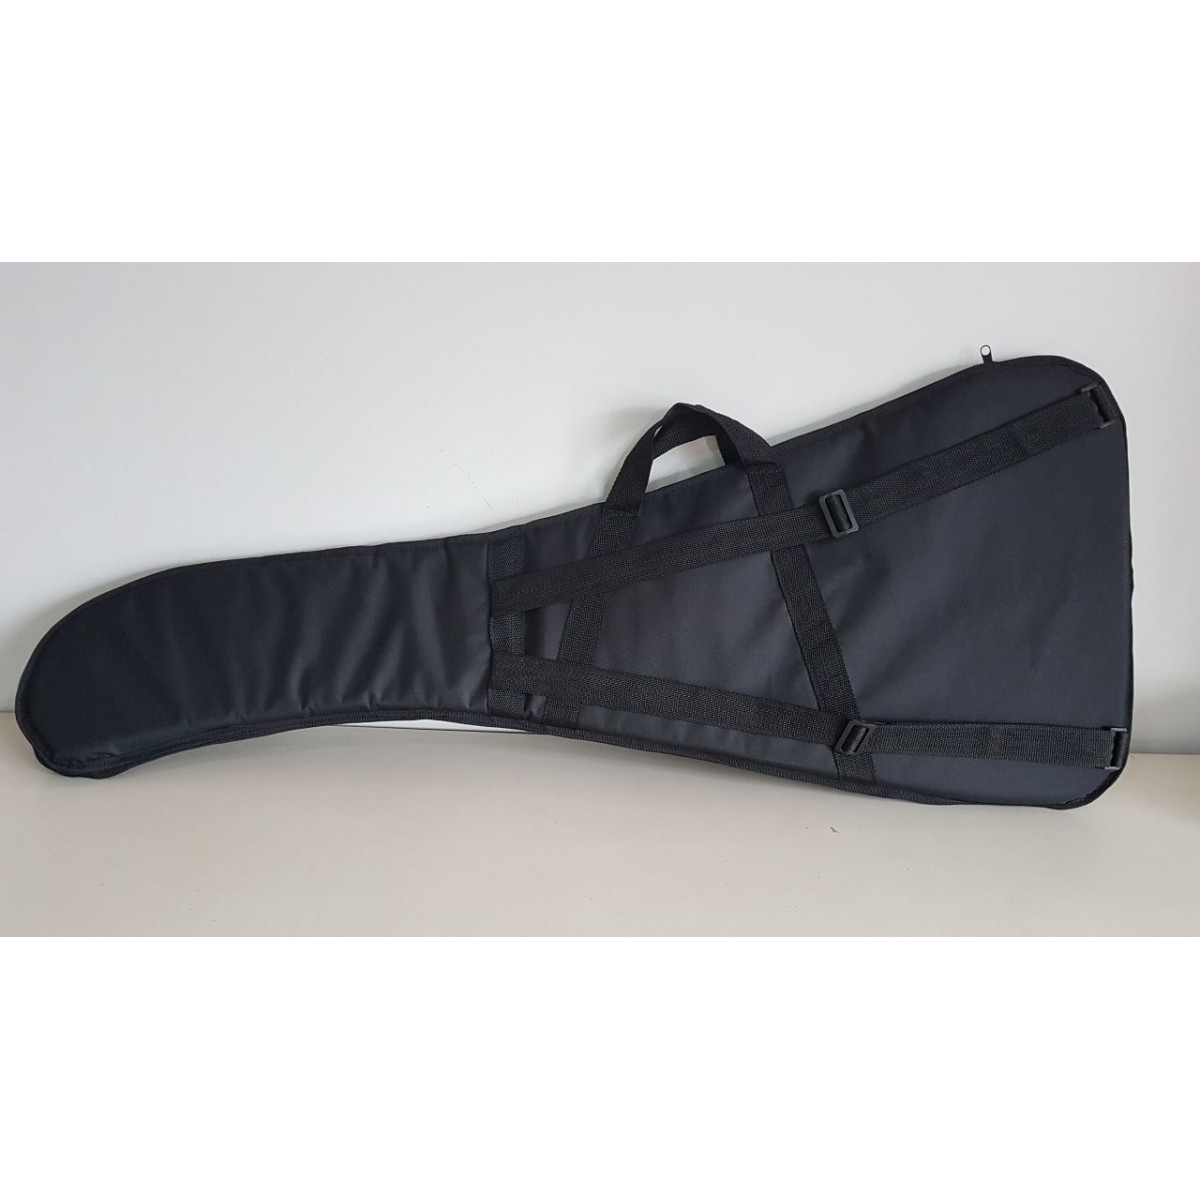 Capa Guitarra Soft Case Start Flying V Almofadada - Preto